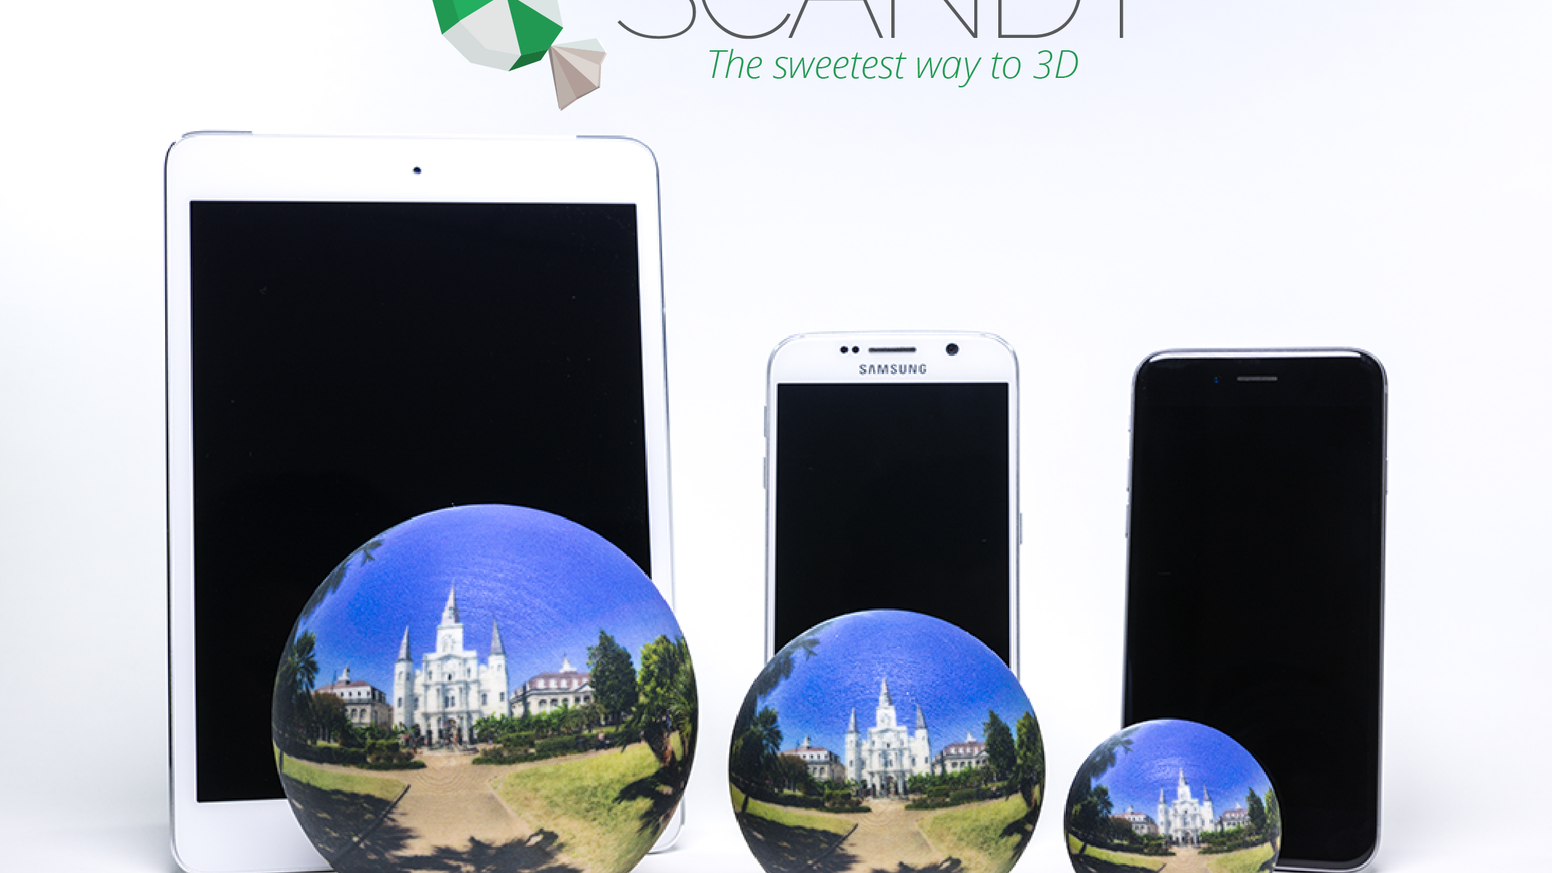 Capture life's precious moments in 360° with Scandy and order full-color 3D-printed Scandy Spheres, all from your mobile device.